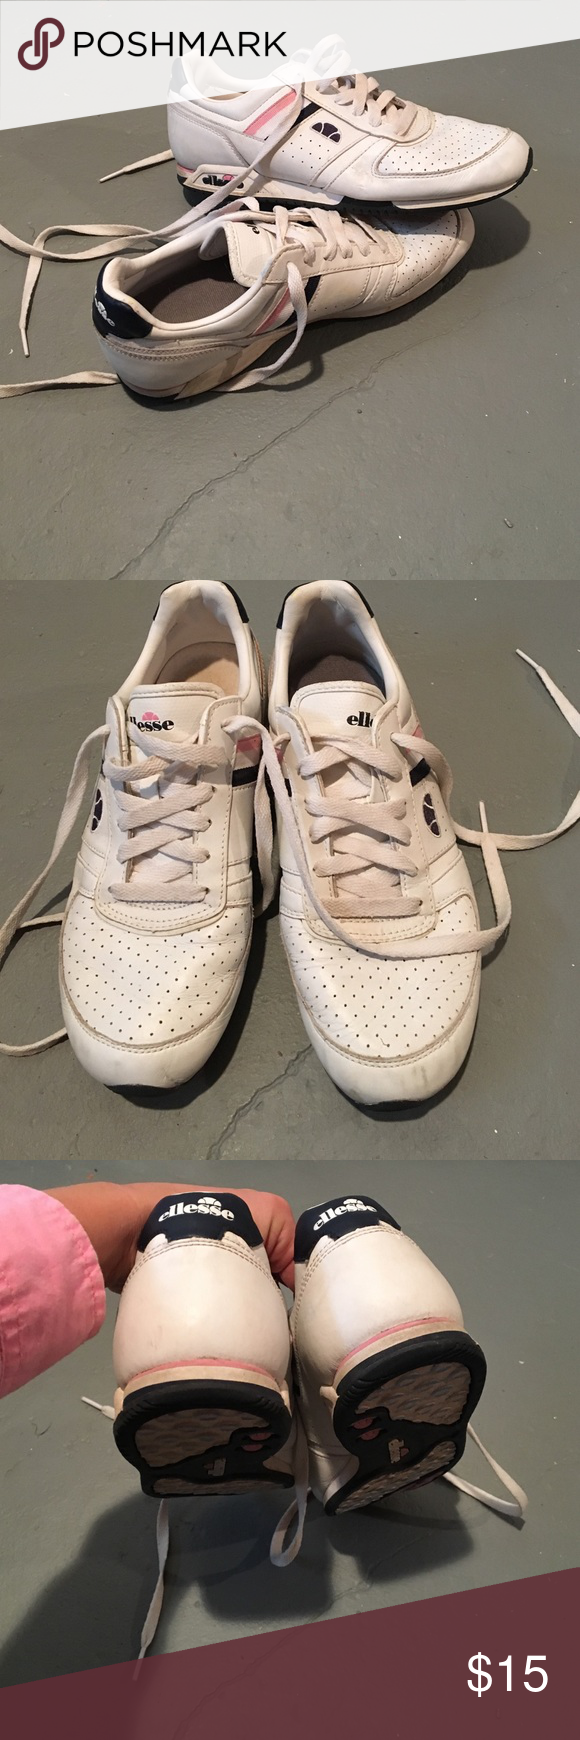 Ellesse white tennis cheer classic sneakers Amazing quality sneakers,  non-marking soles with plenty of life left. Shows wear, see pictures. e558ce4103